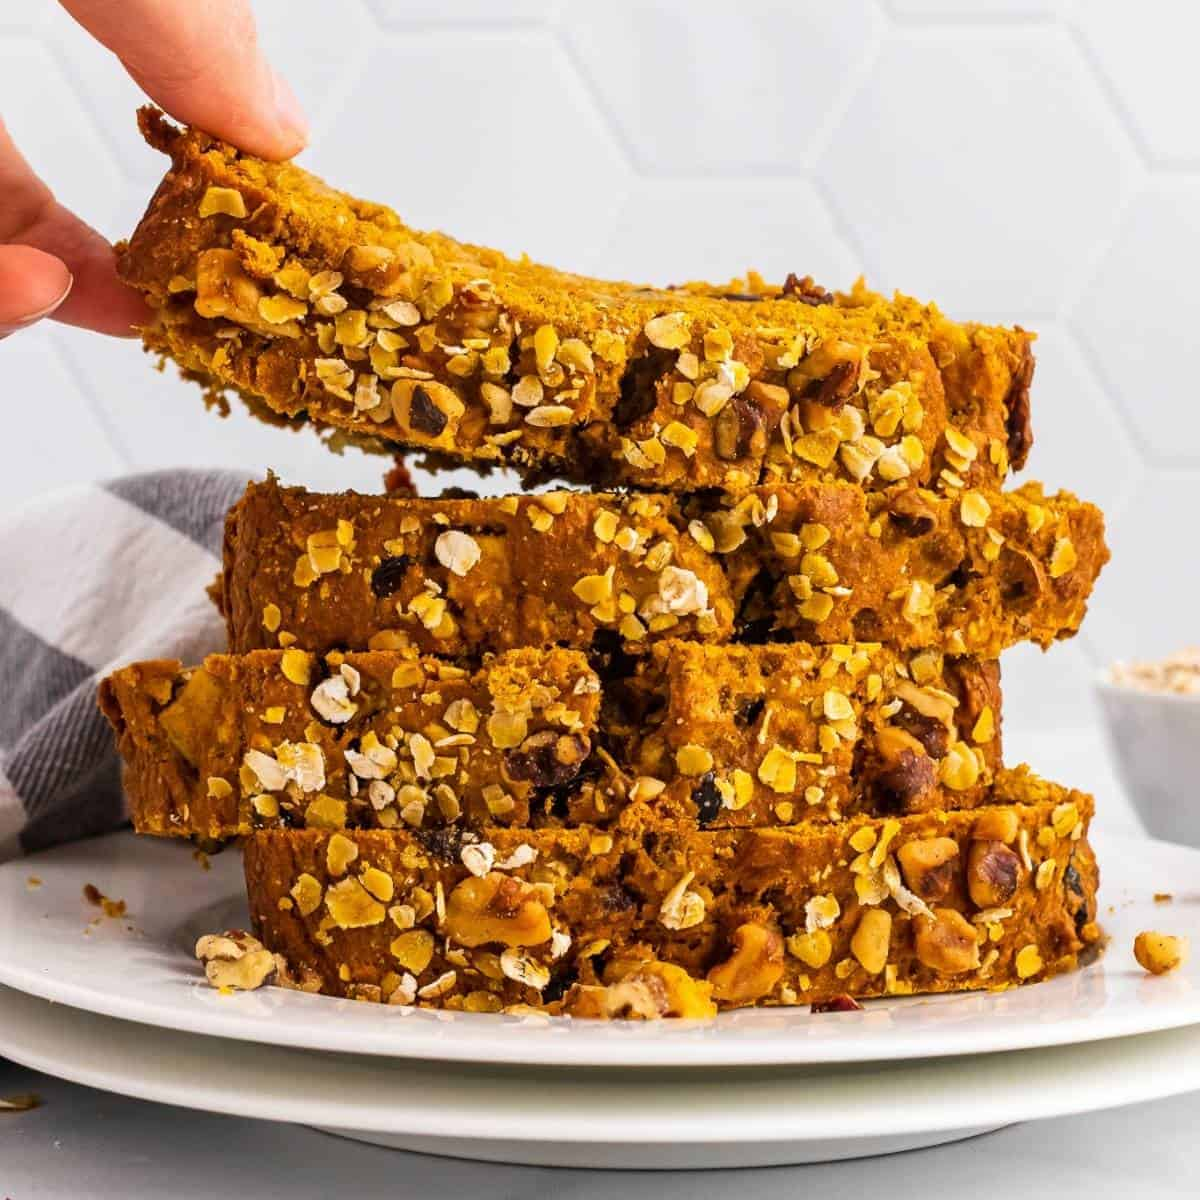 pumpkin apple bread recipe to make this fall. Slices layered on top of one another.